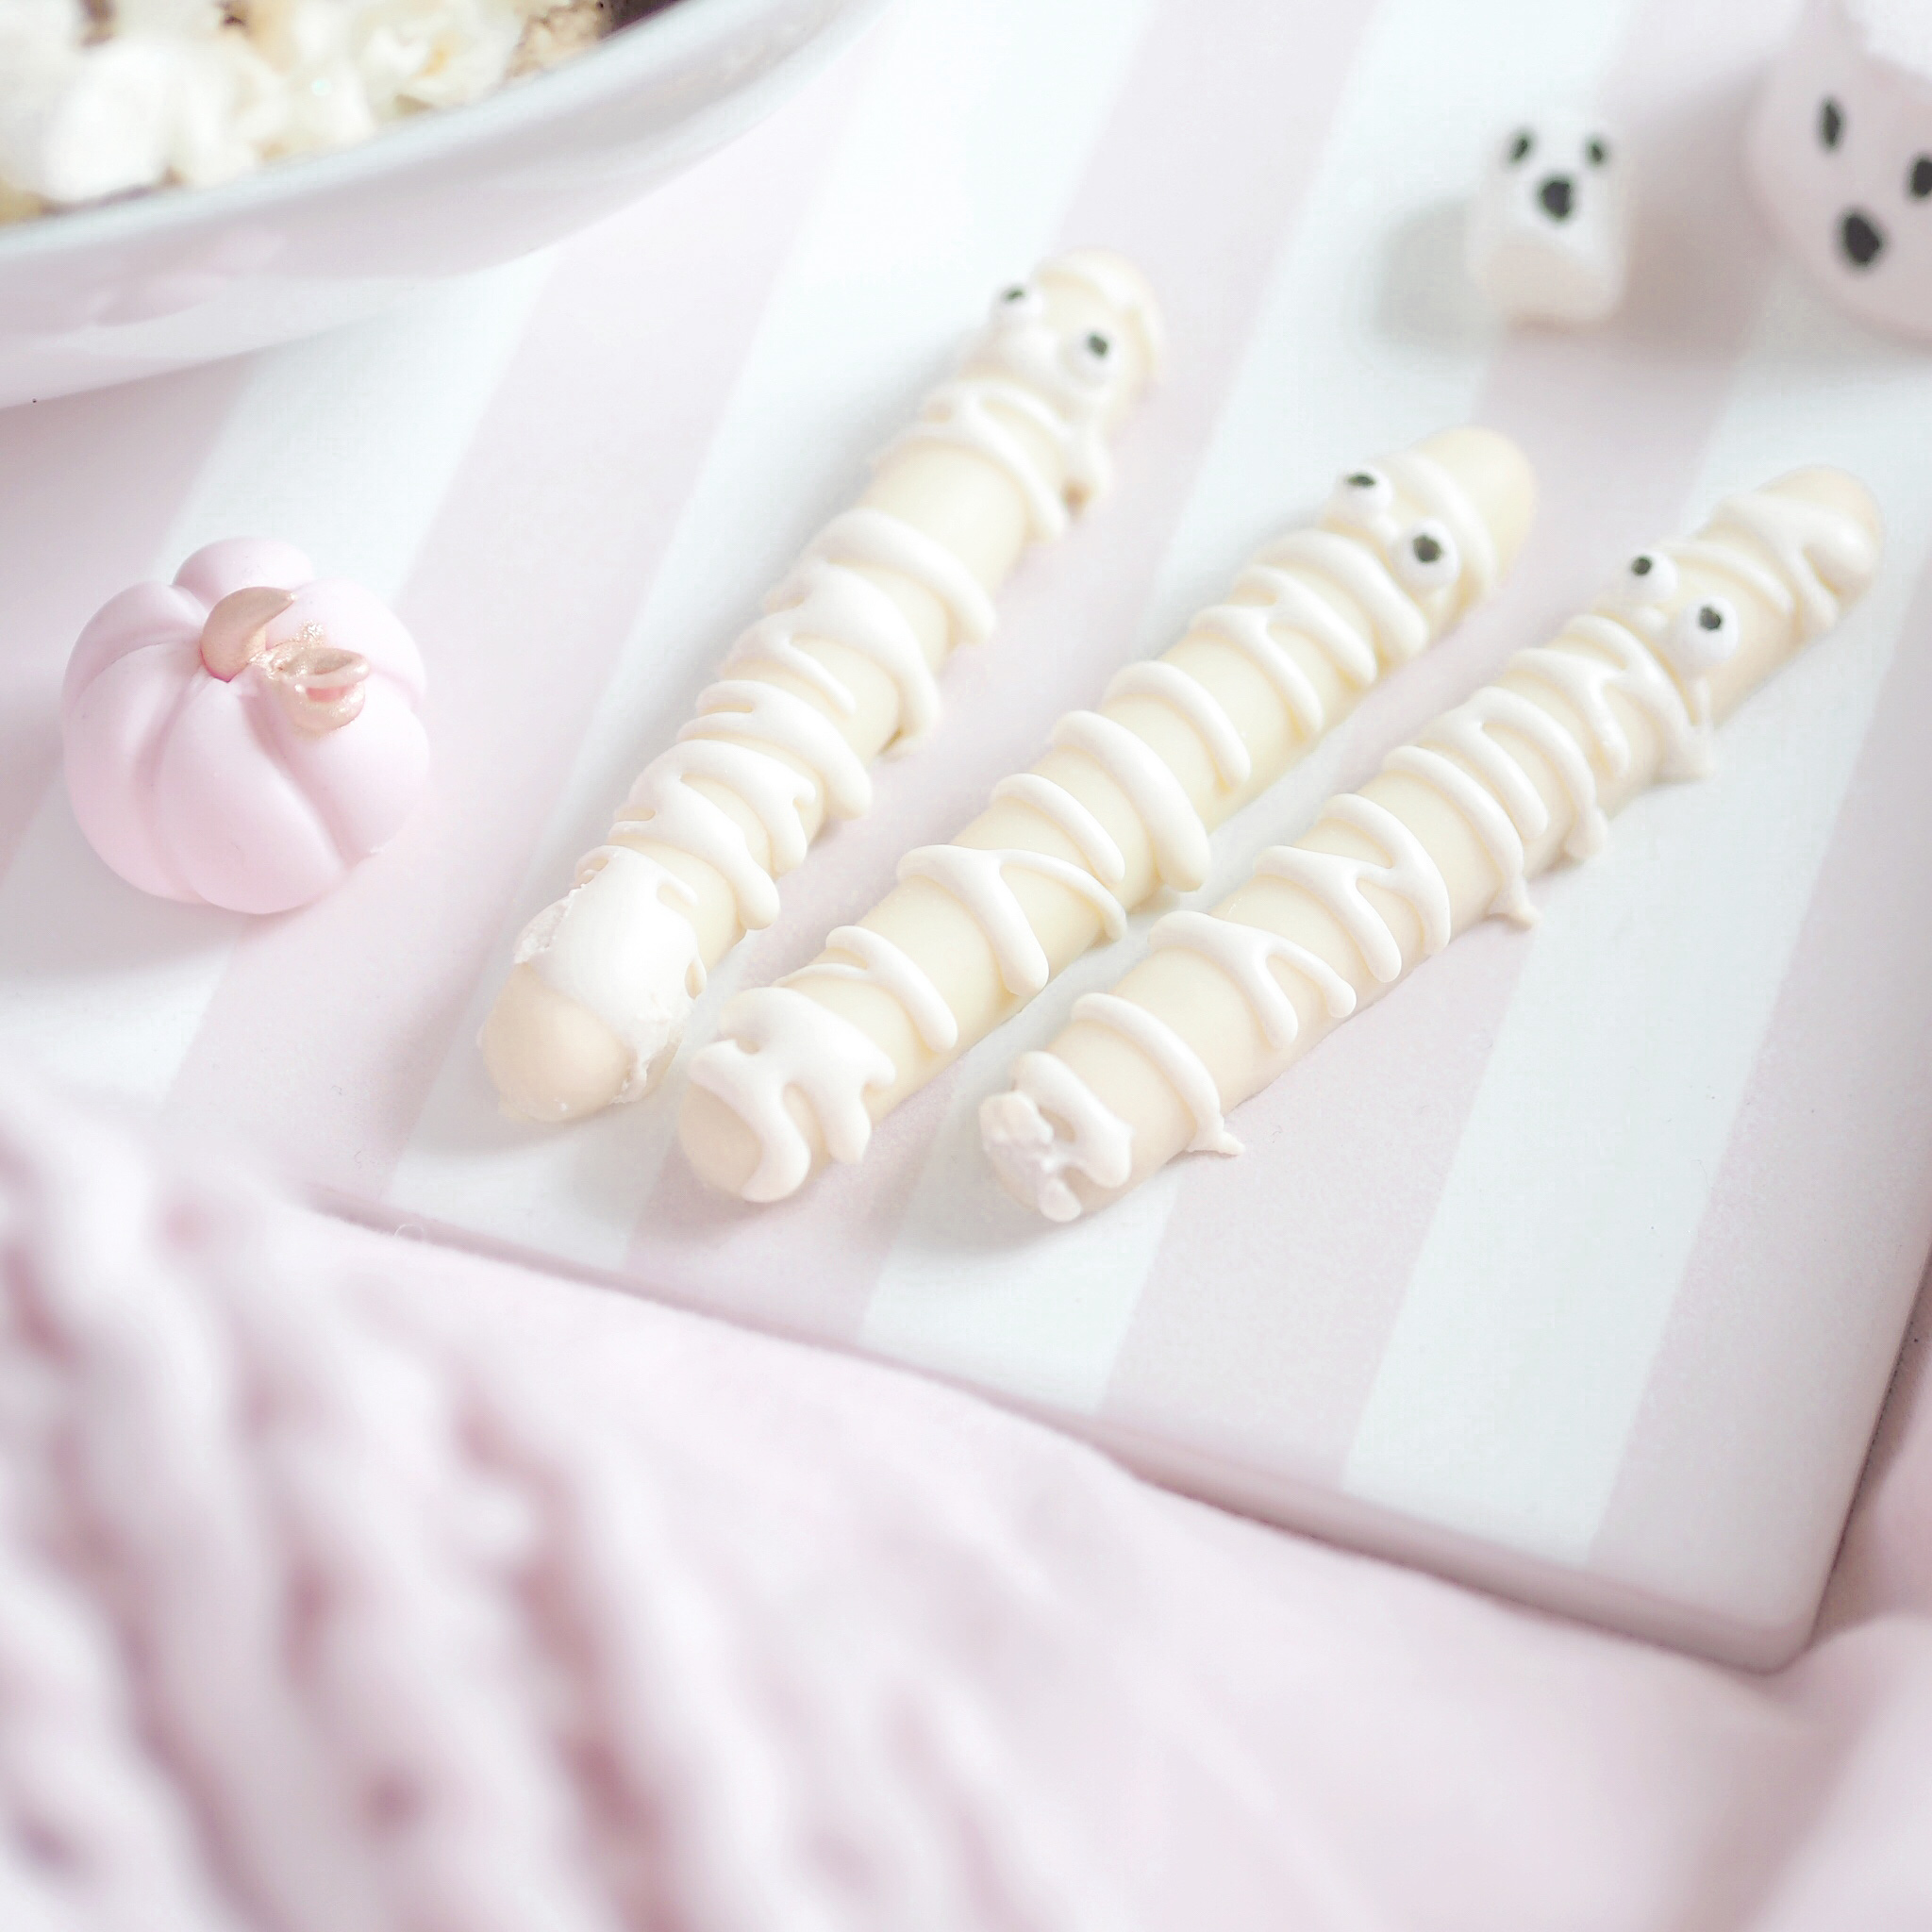 Mummified White Chocolate Fingers | A Girly Halloween Movie Night With 3 Easy Treats